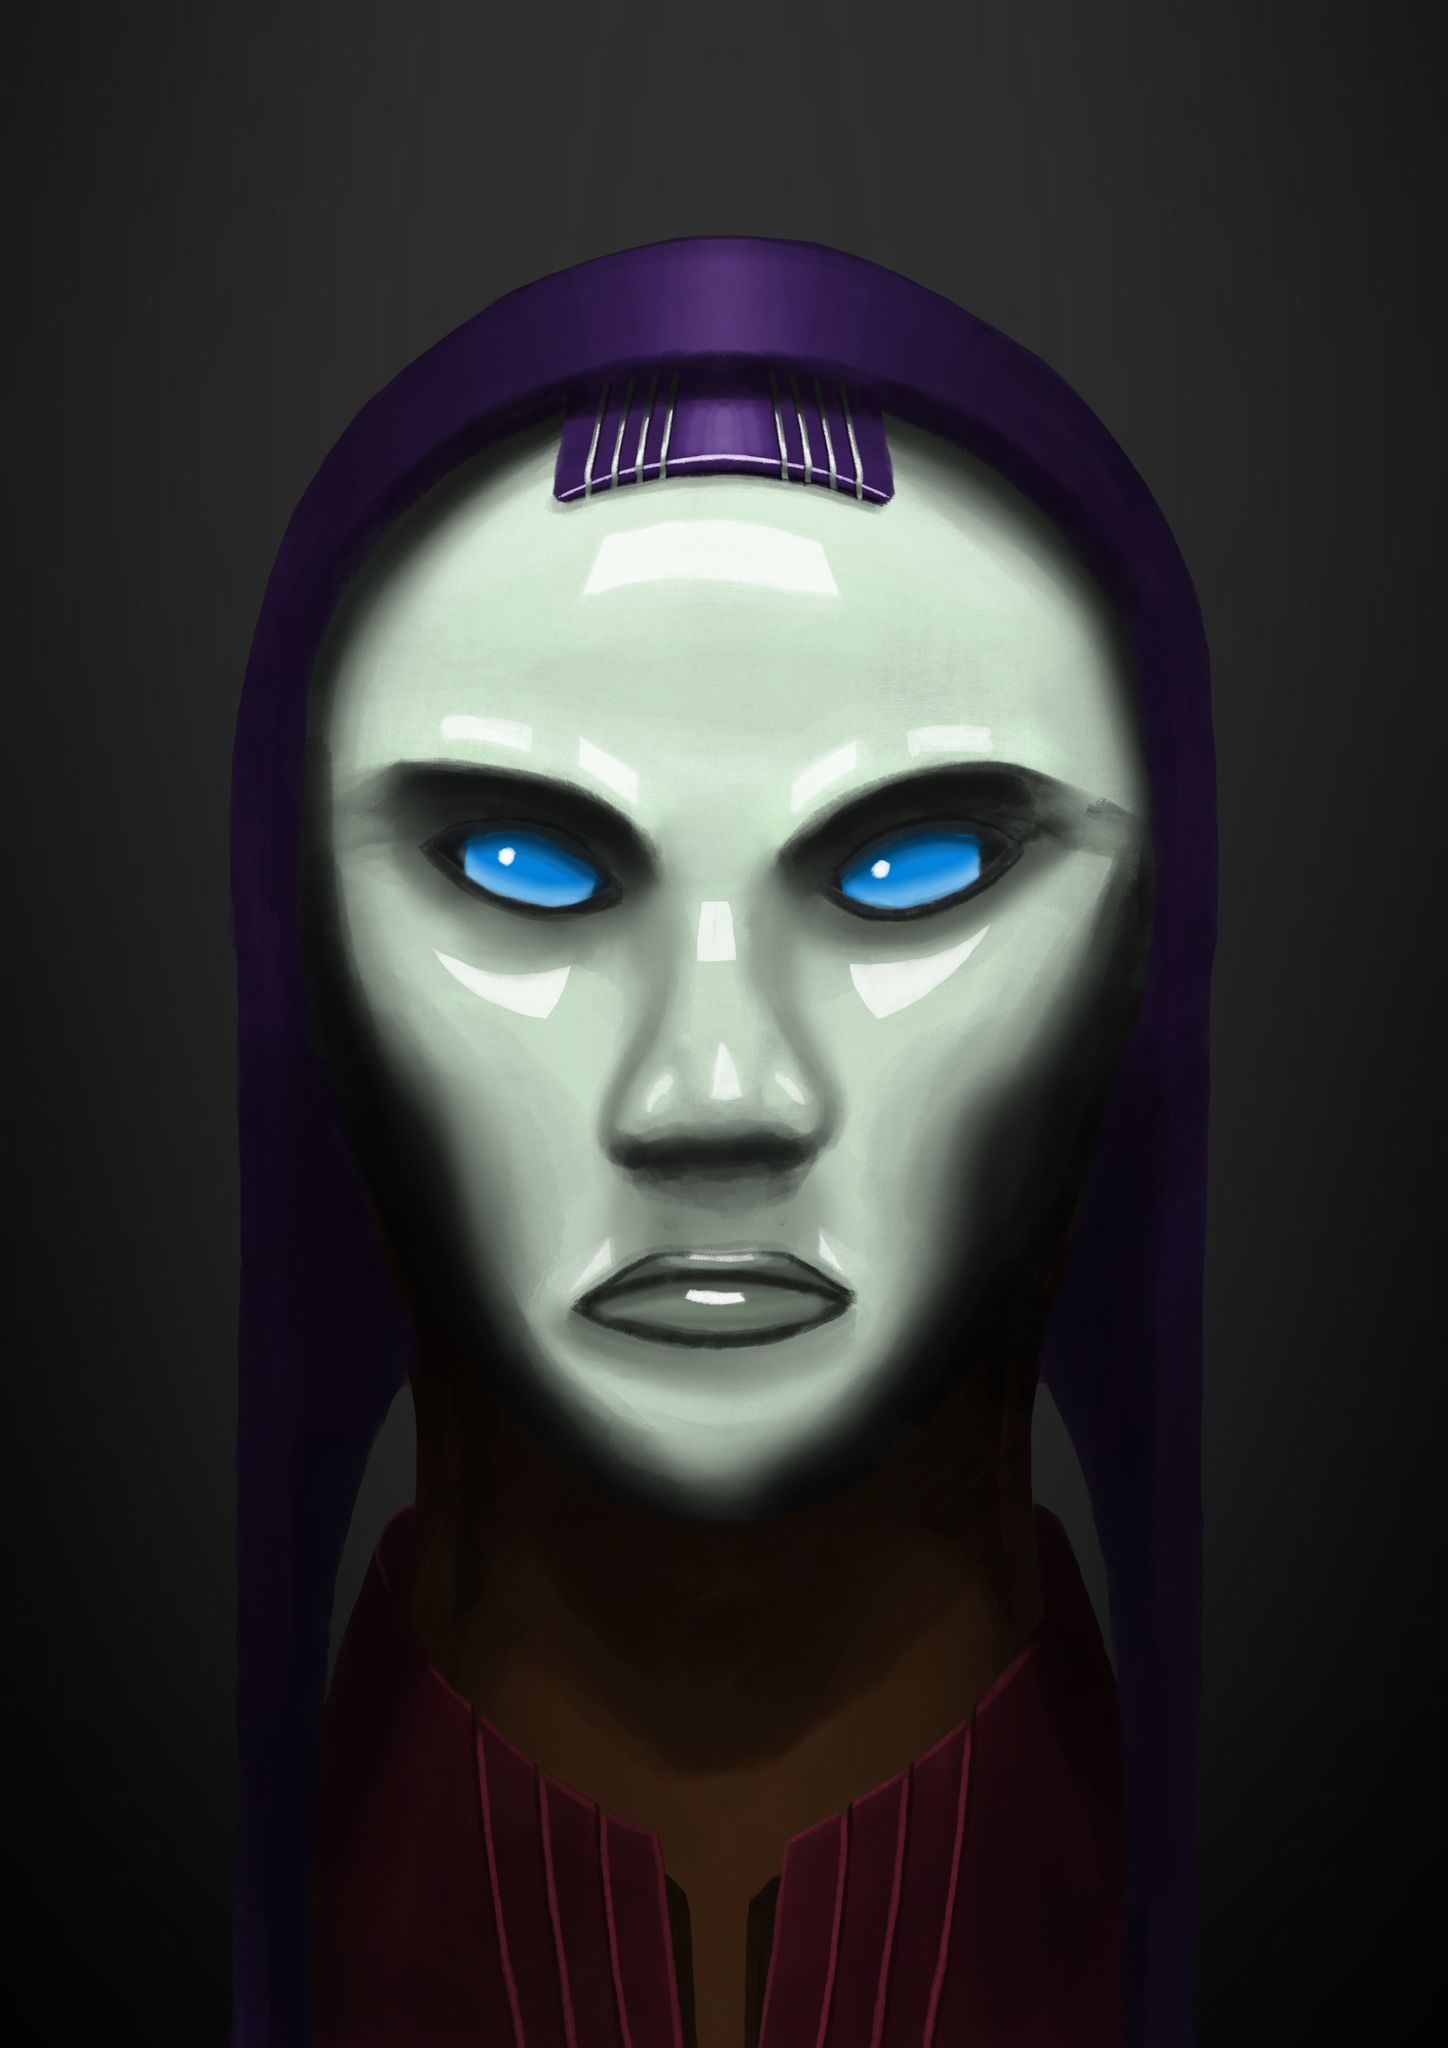 A portrait painting of a clearly-cybernetic/artificial humanoid with green plastic-seeming skin and fully blue orb-like eyes. She has a purple headdress that goes all the way over the top of her head and down both sides of her face.